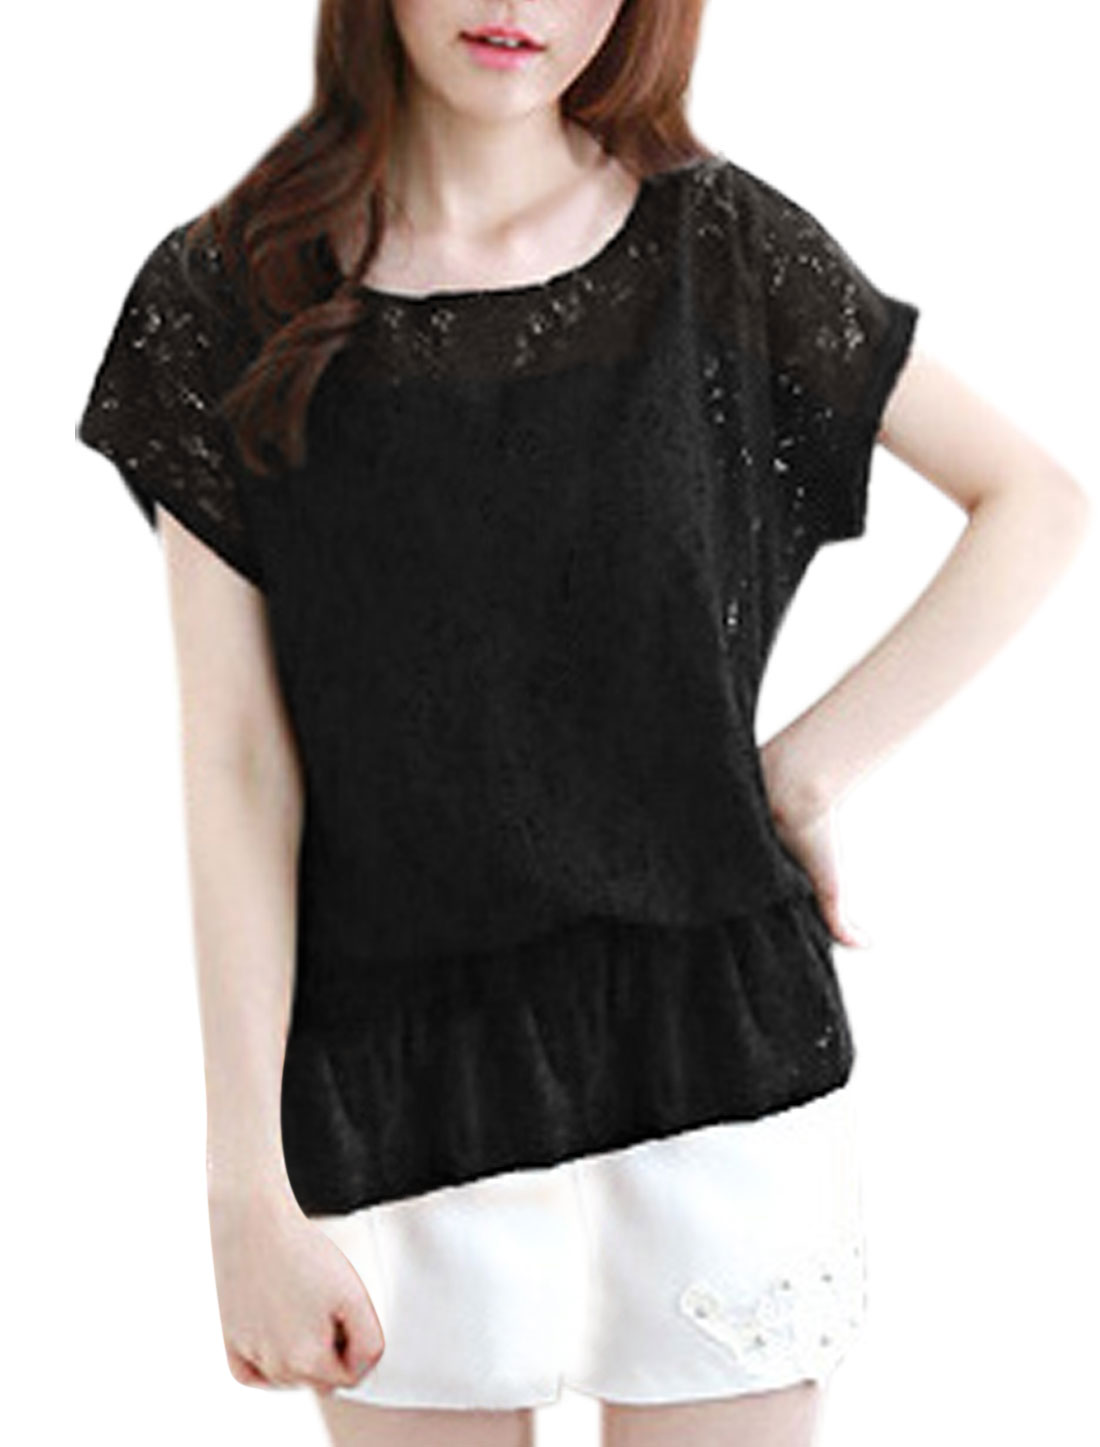 Women Flower Design Hollow Out Elastic Waist Round Neck Top Black S